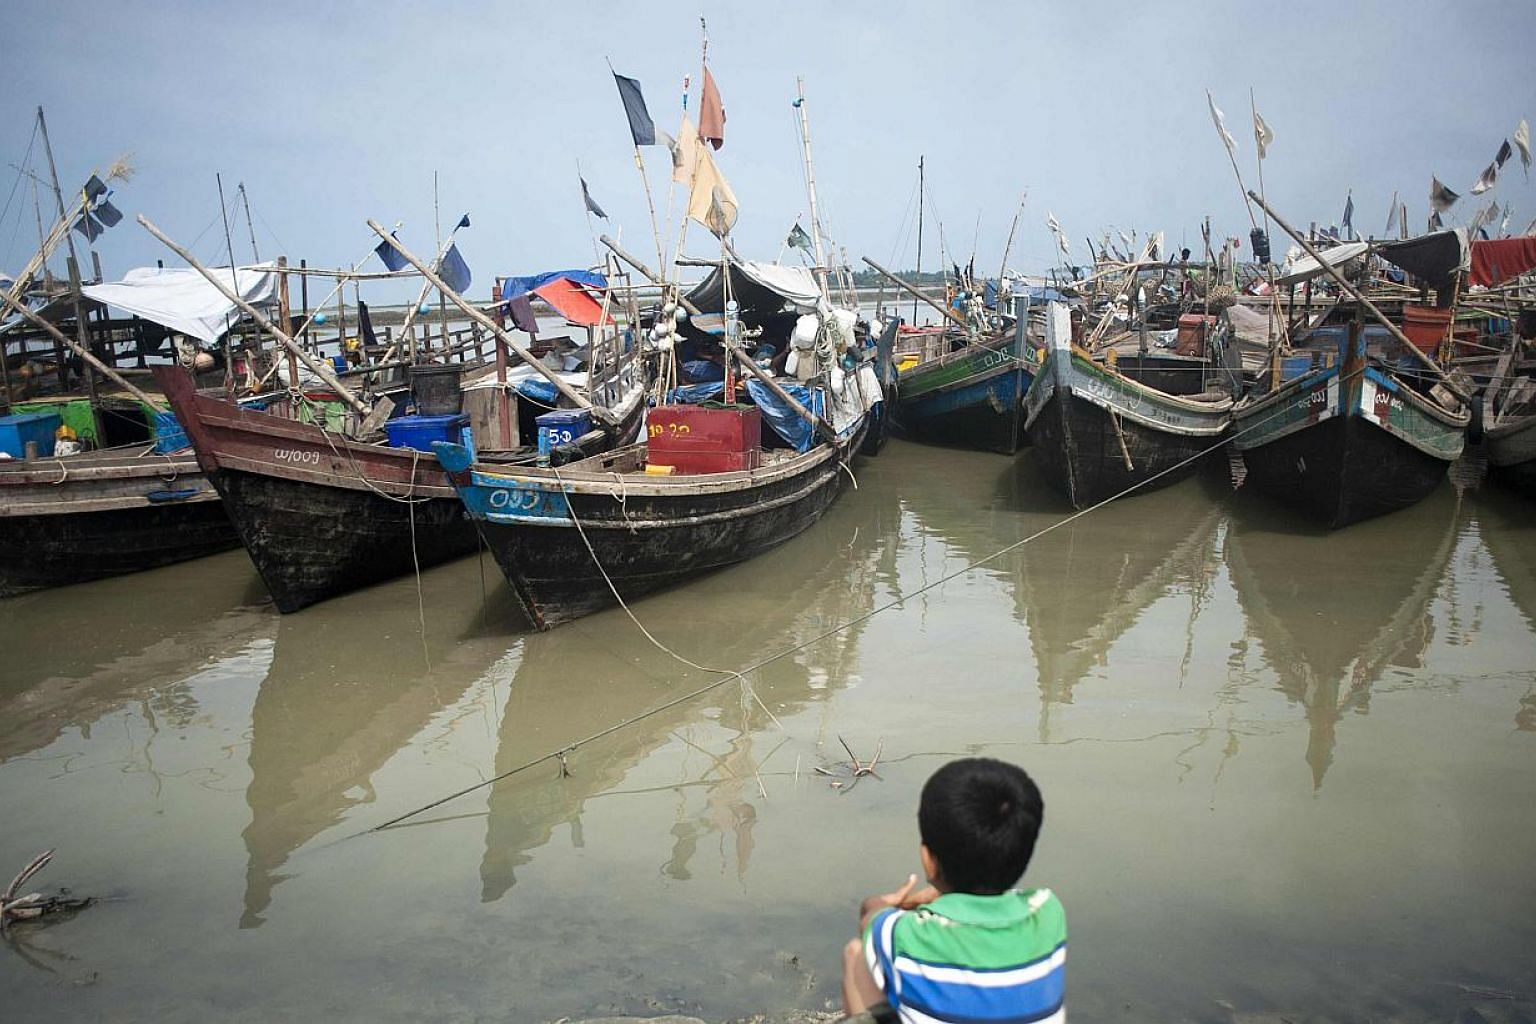 An ethnic Rohingya Muslim child looks at boats near a jetty at a refugee camp outside the city of Sittwe in Myanmar's Rakhine state on May 22, 2015. -- PHOTO: AFP